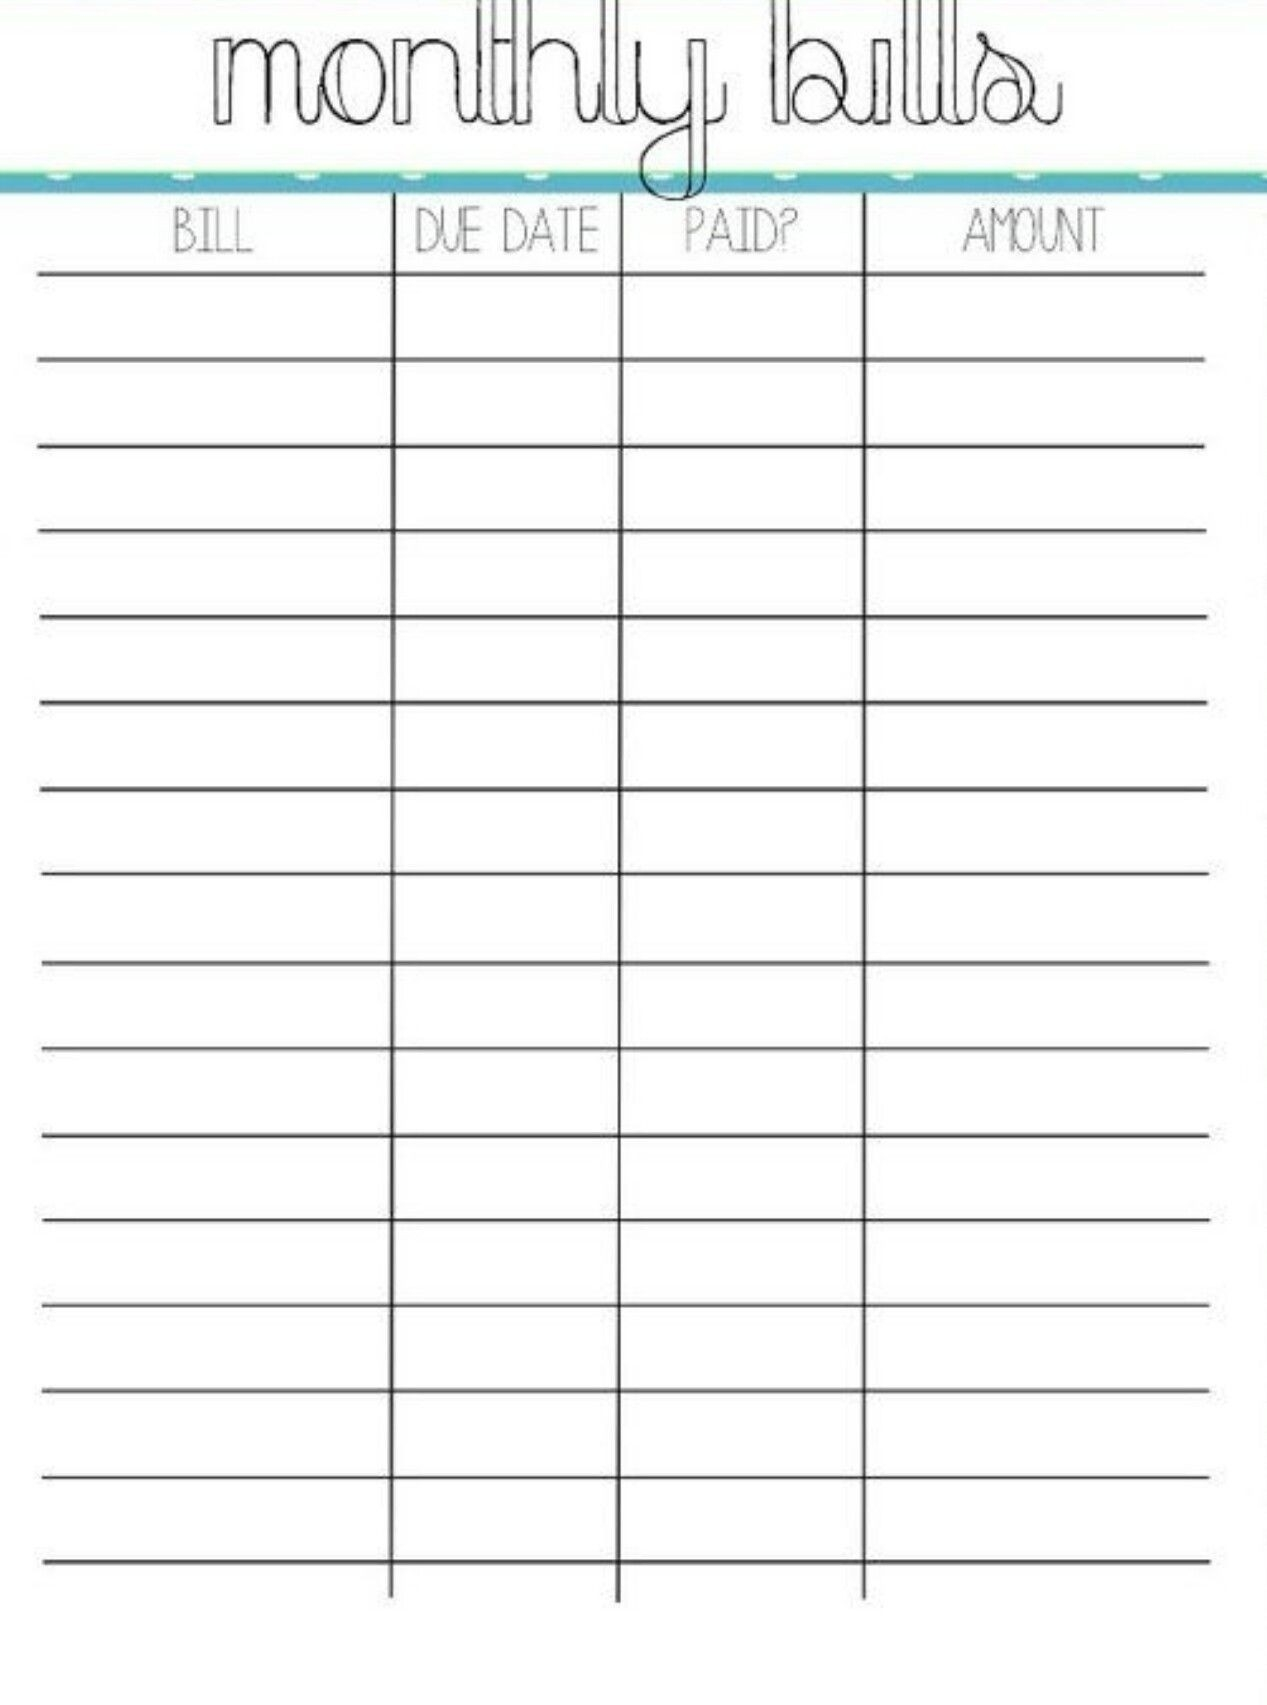 Bill Organizer Sheet - Akali  Printable Monthley Bills Sheet